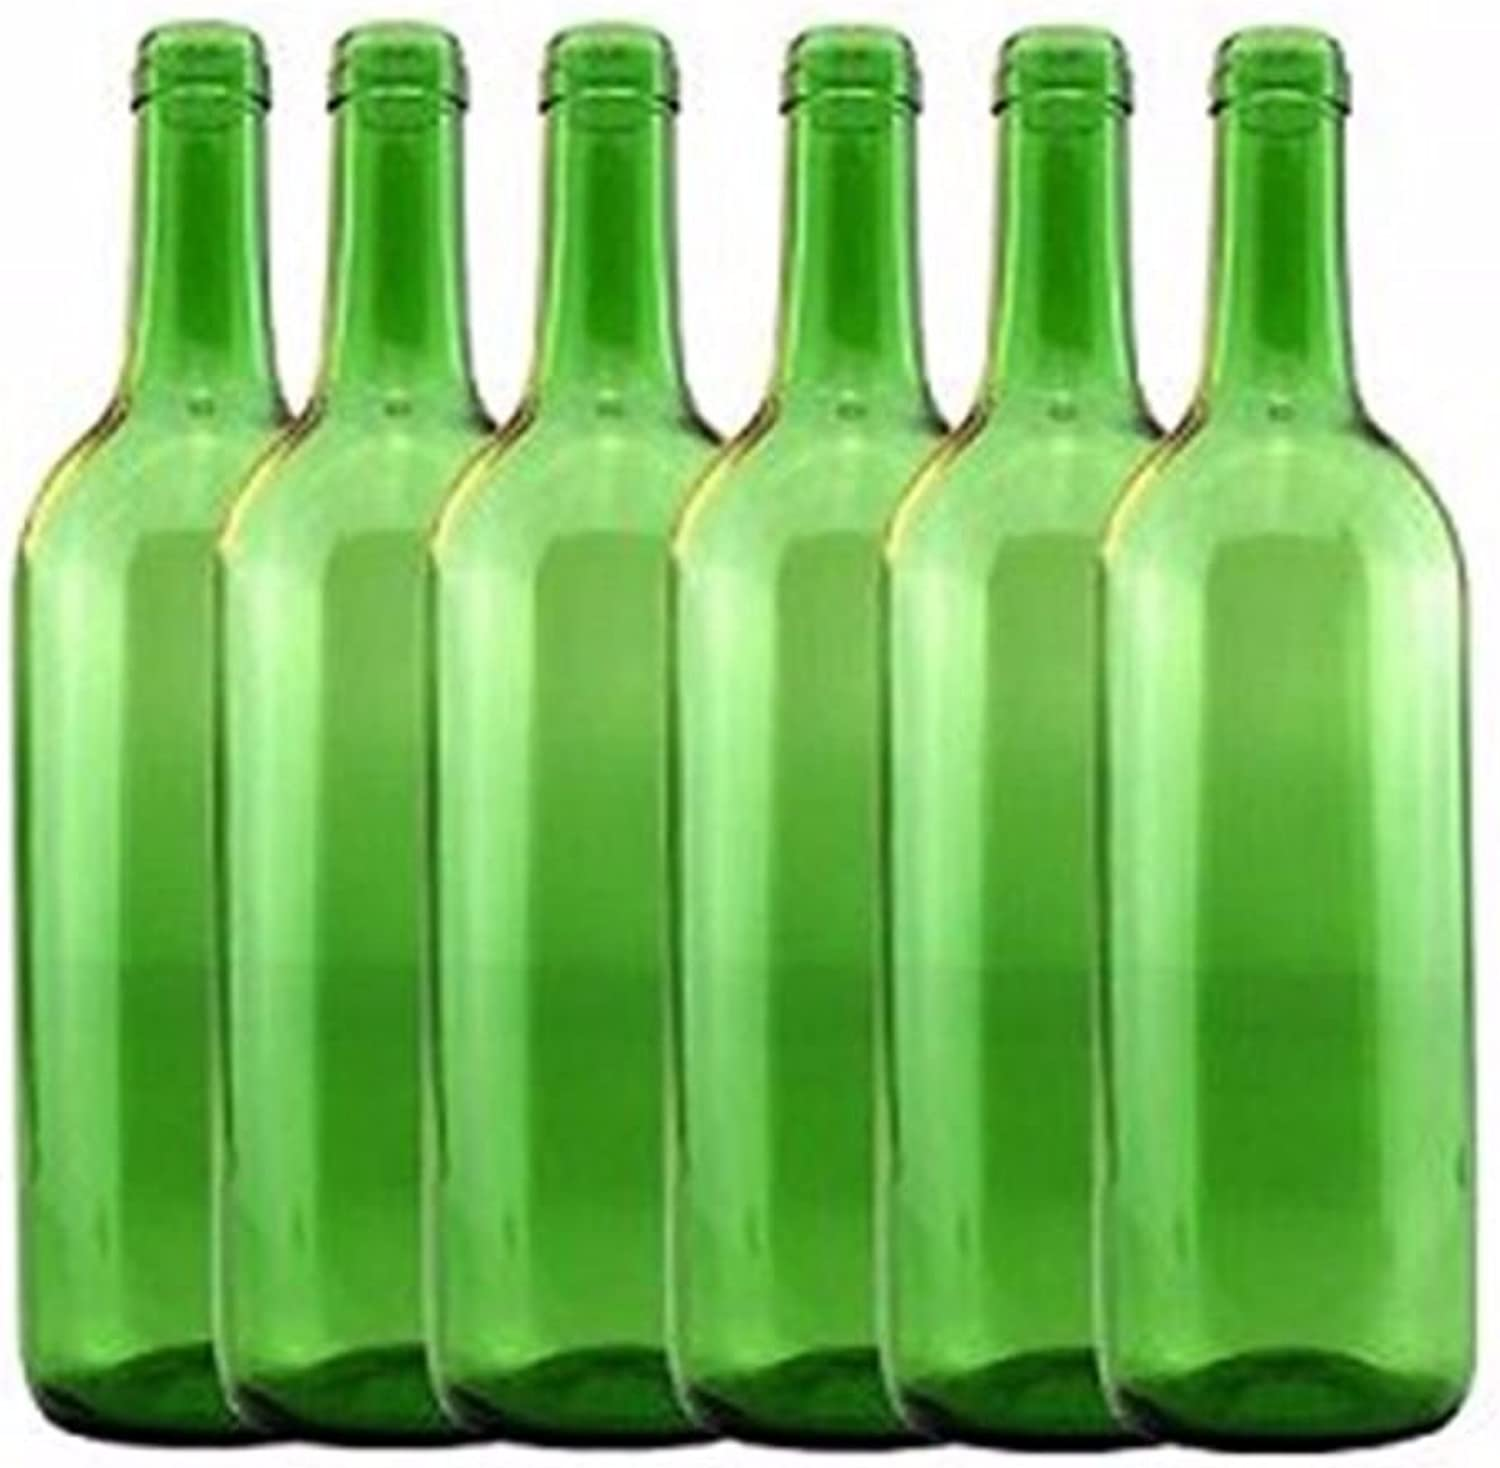 Home Brew Ohio 6 gal Bottle Set  Emerald Green Claret Bordeaux (36 Bottles)